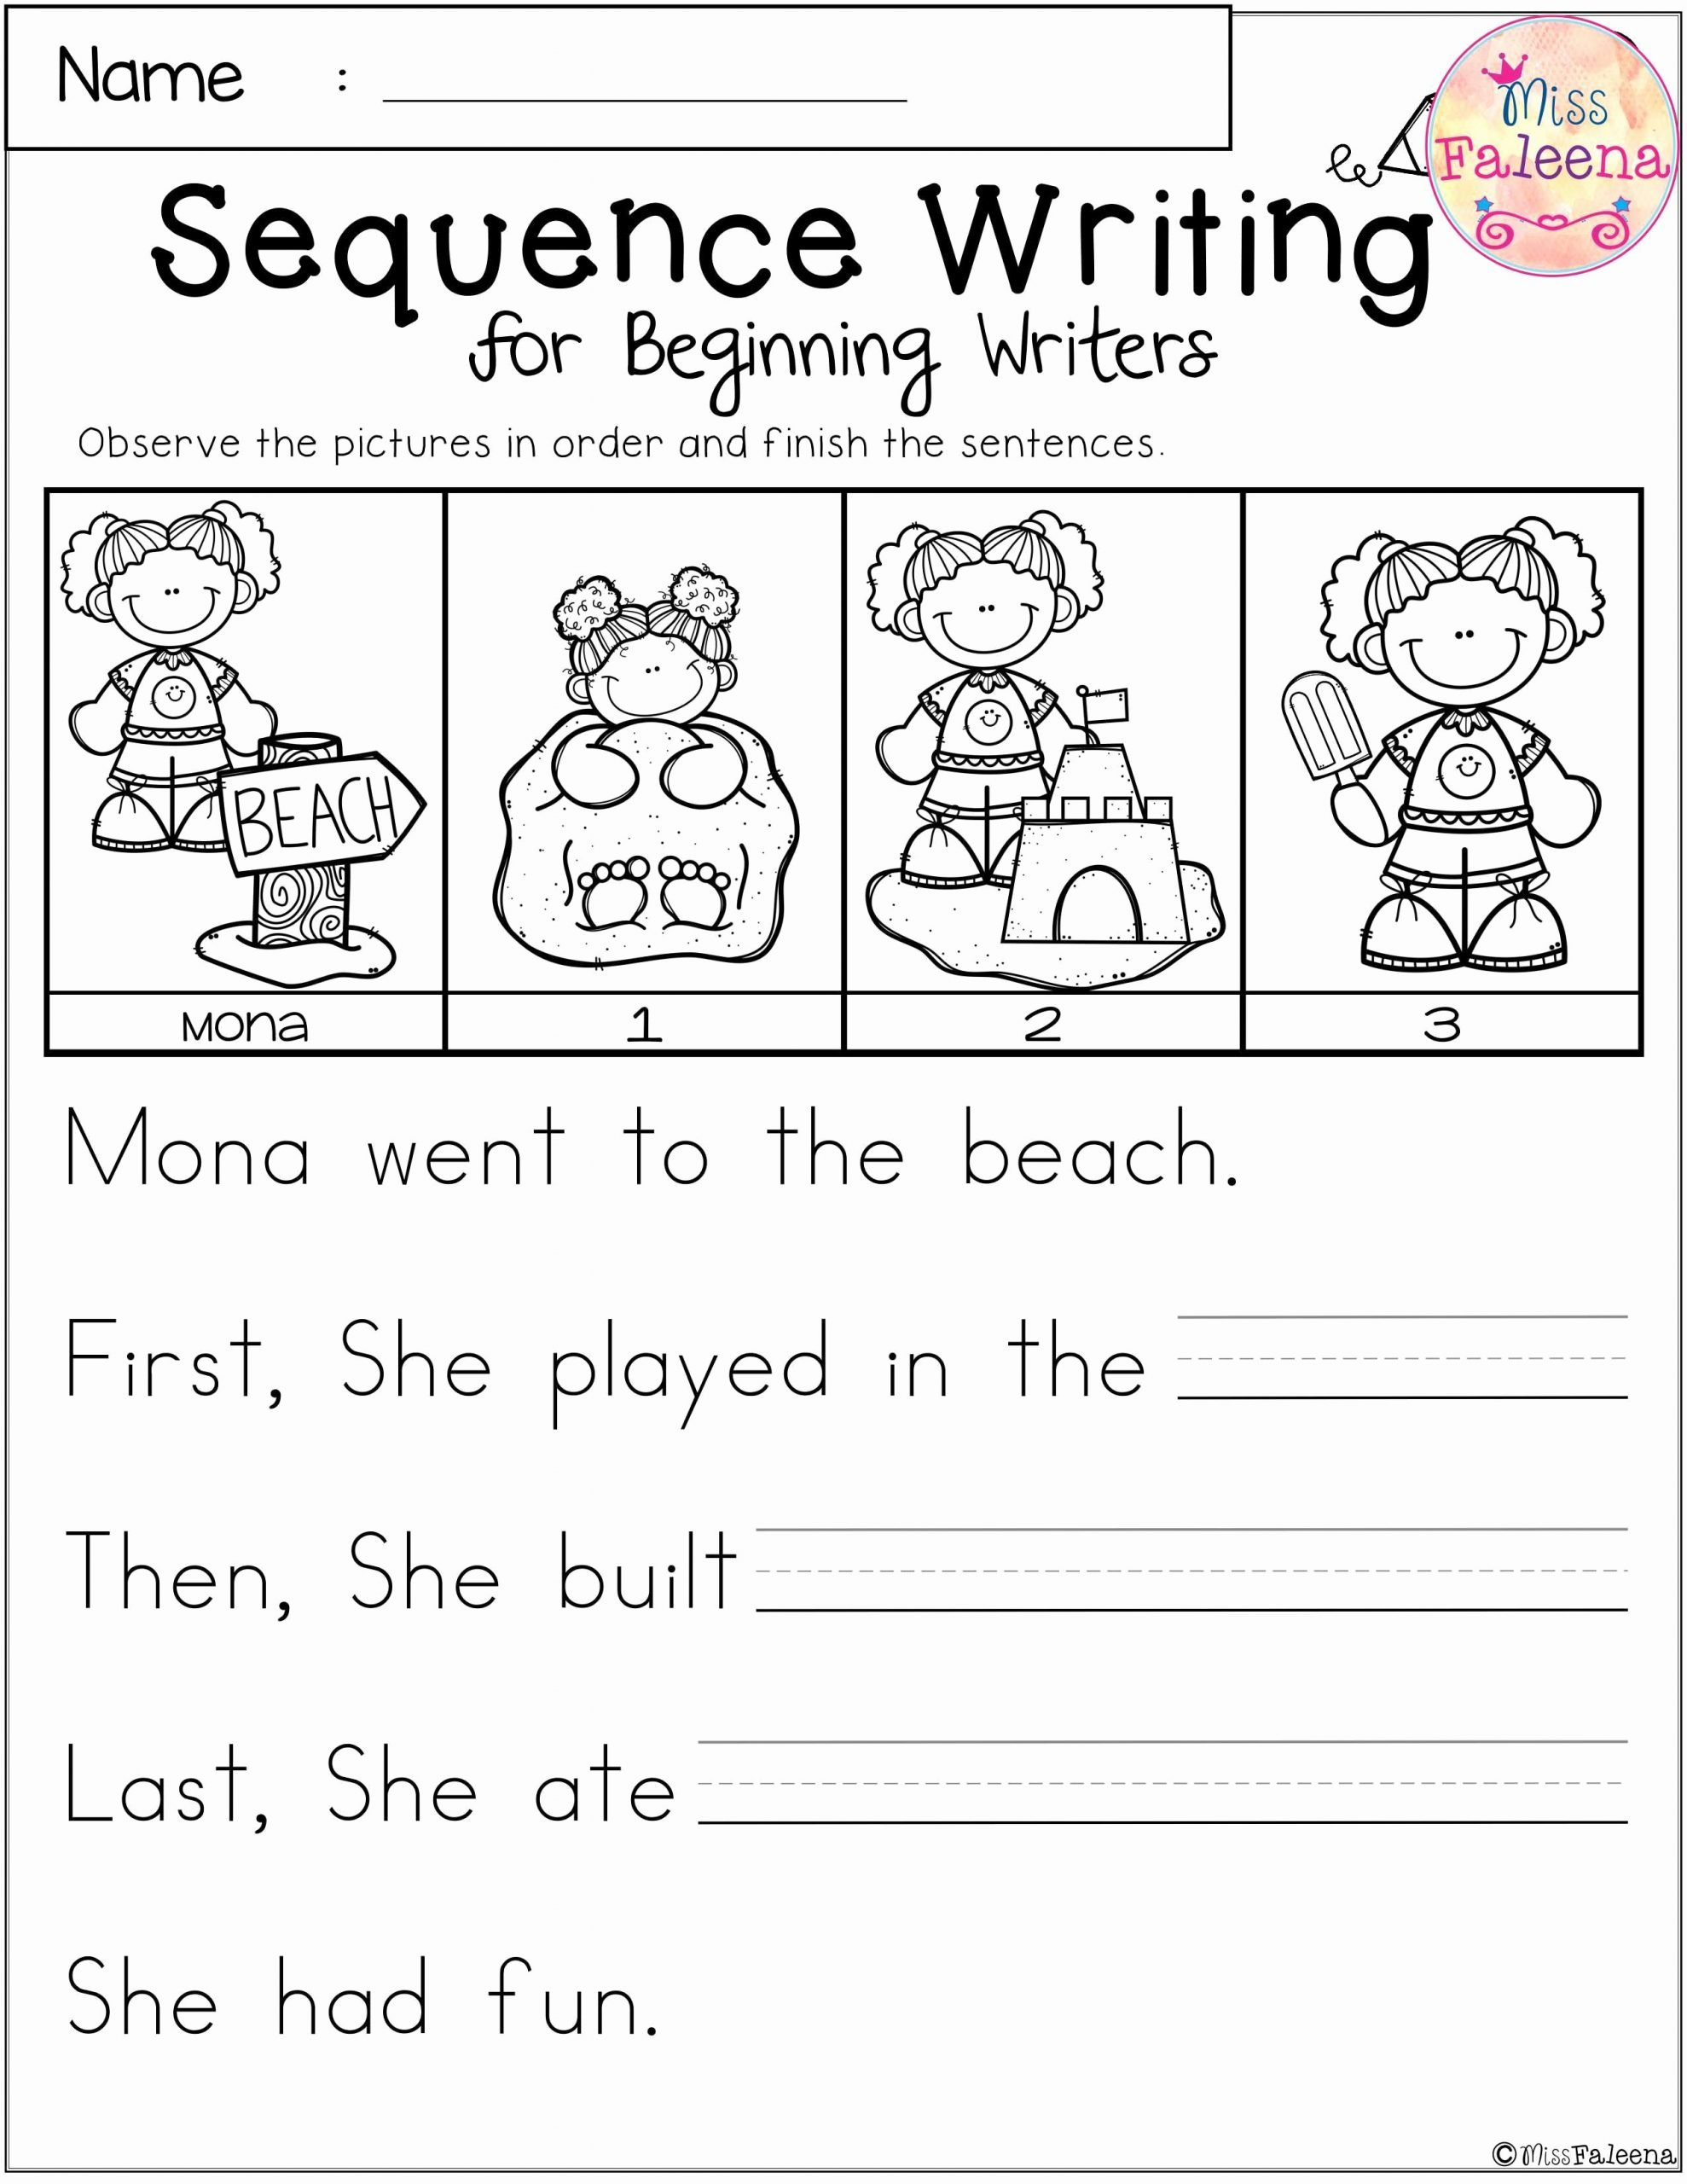 Sequencing Worksheets for Preschoolers Free Free Sequence Writing for Beginning Writers